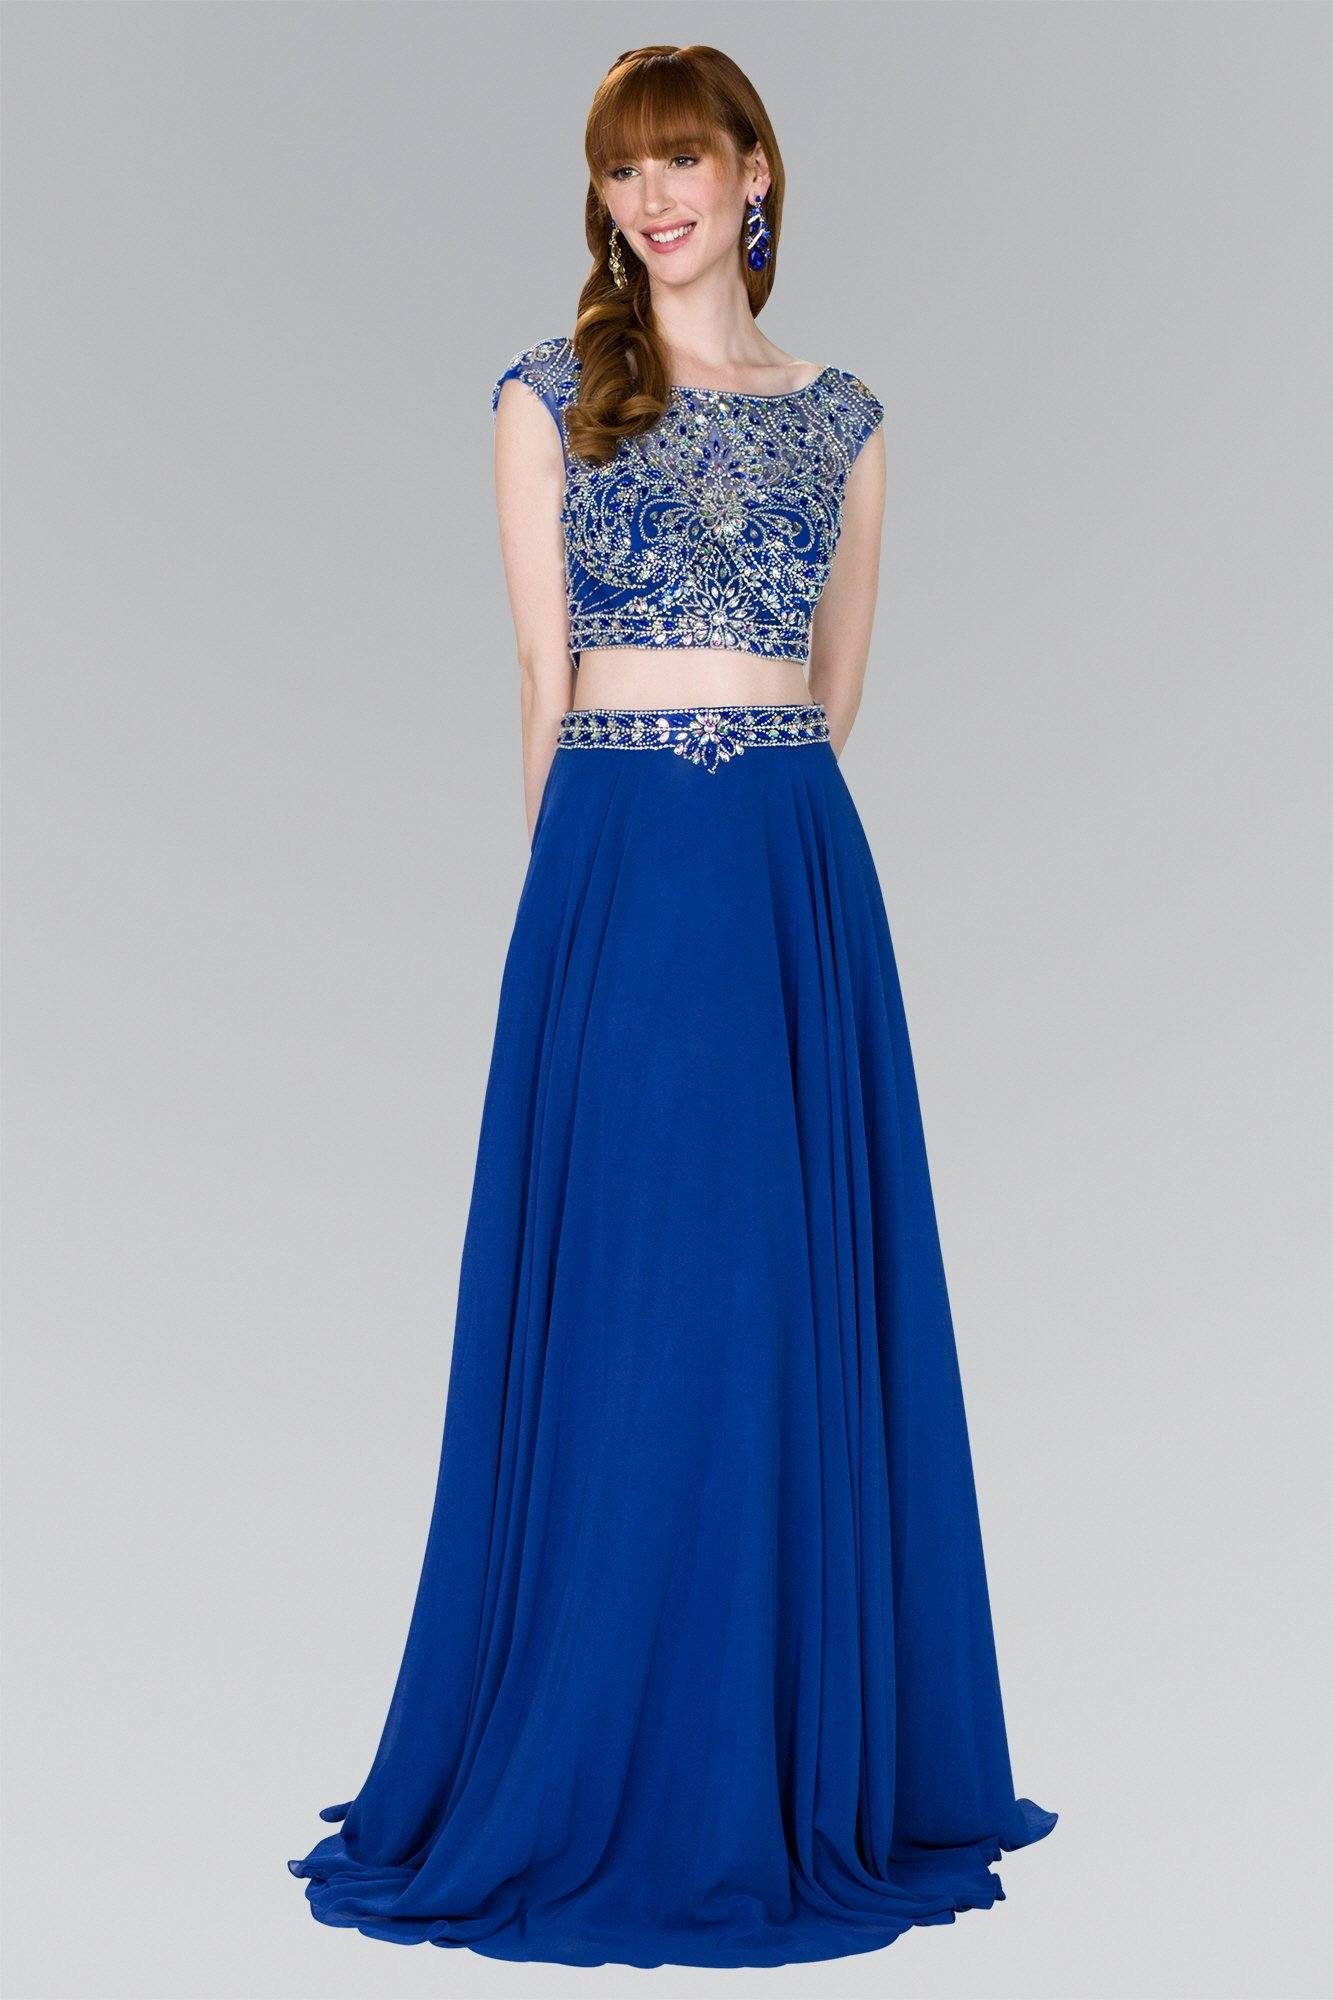 Sparkly 2 piece royal blue prom dress gl2422-Simply Fab Dress